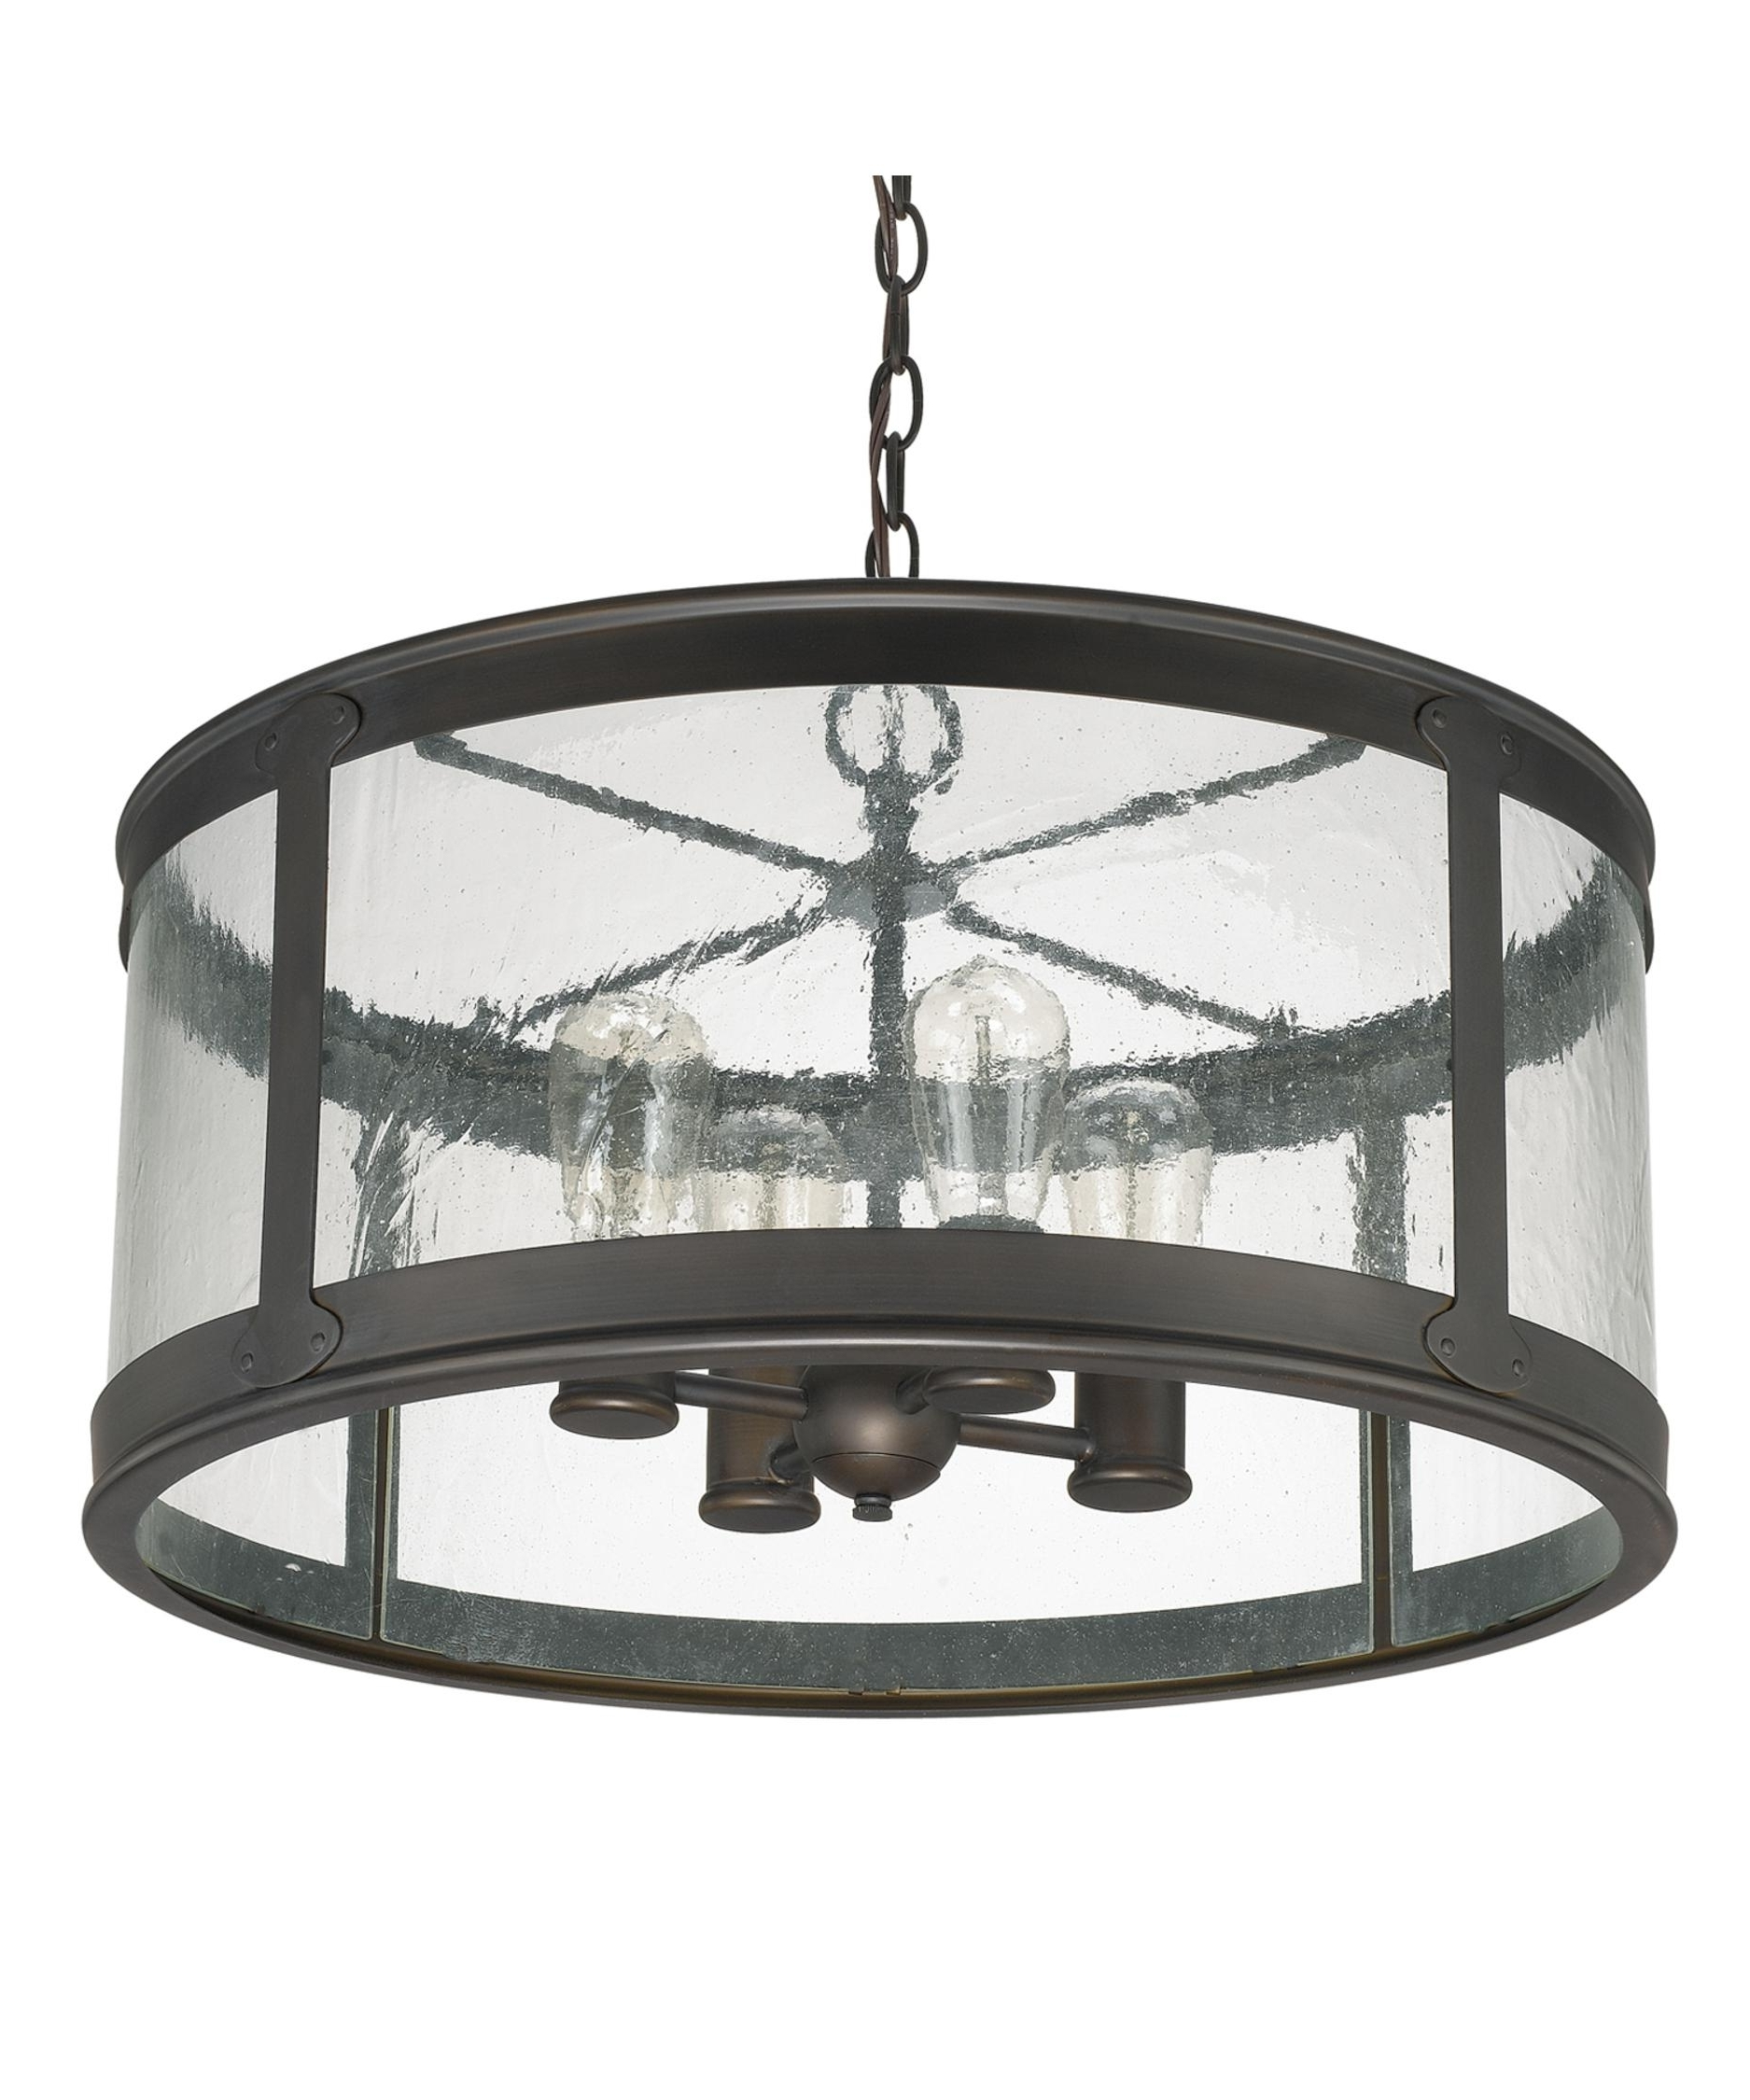 Lamps Plus Outdoor Hanging Lights • Outdoor Lighting Intended For Most Recent Lamps Plus Outdoor Hanging Lights (View 14 of 20)